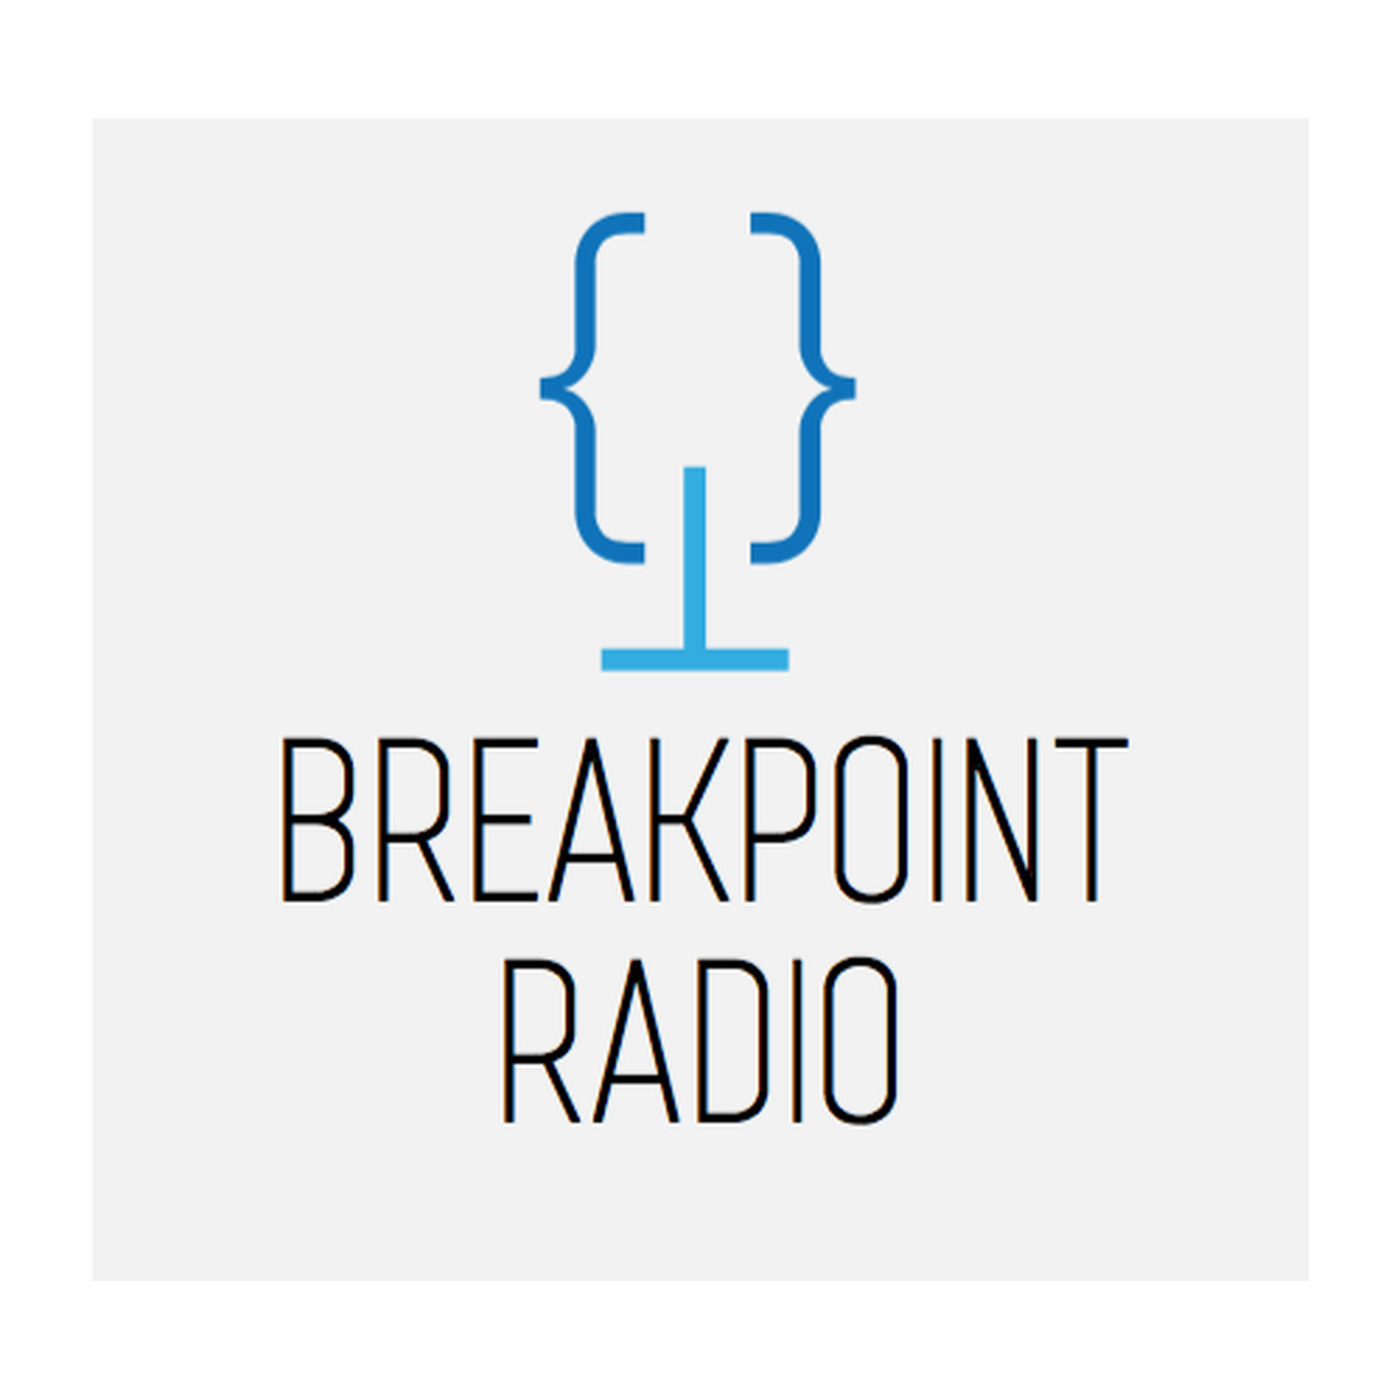 Breakpoint radio logo